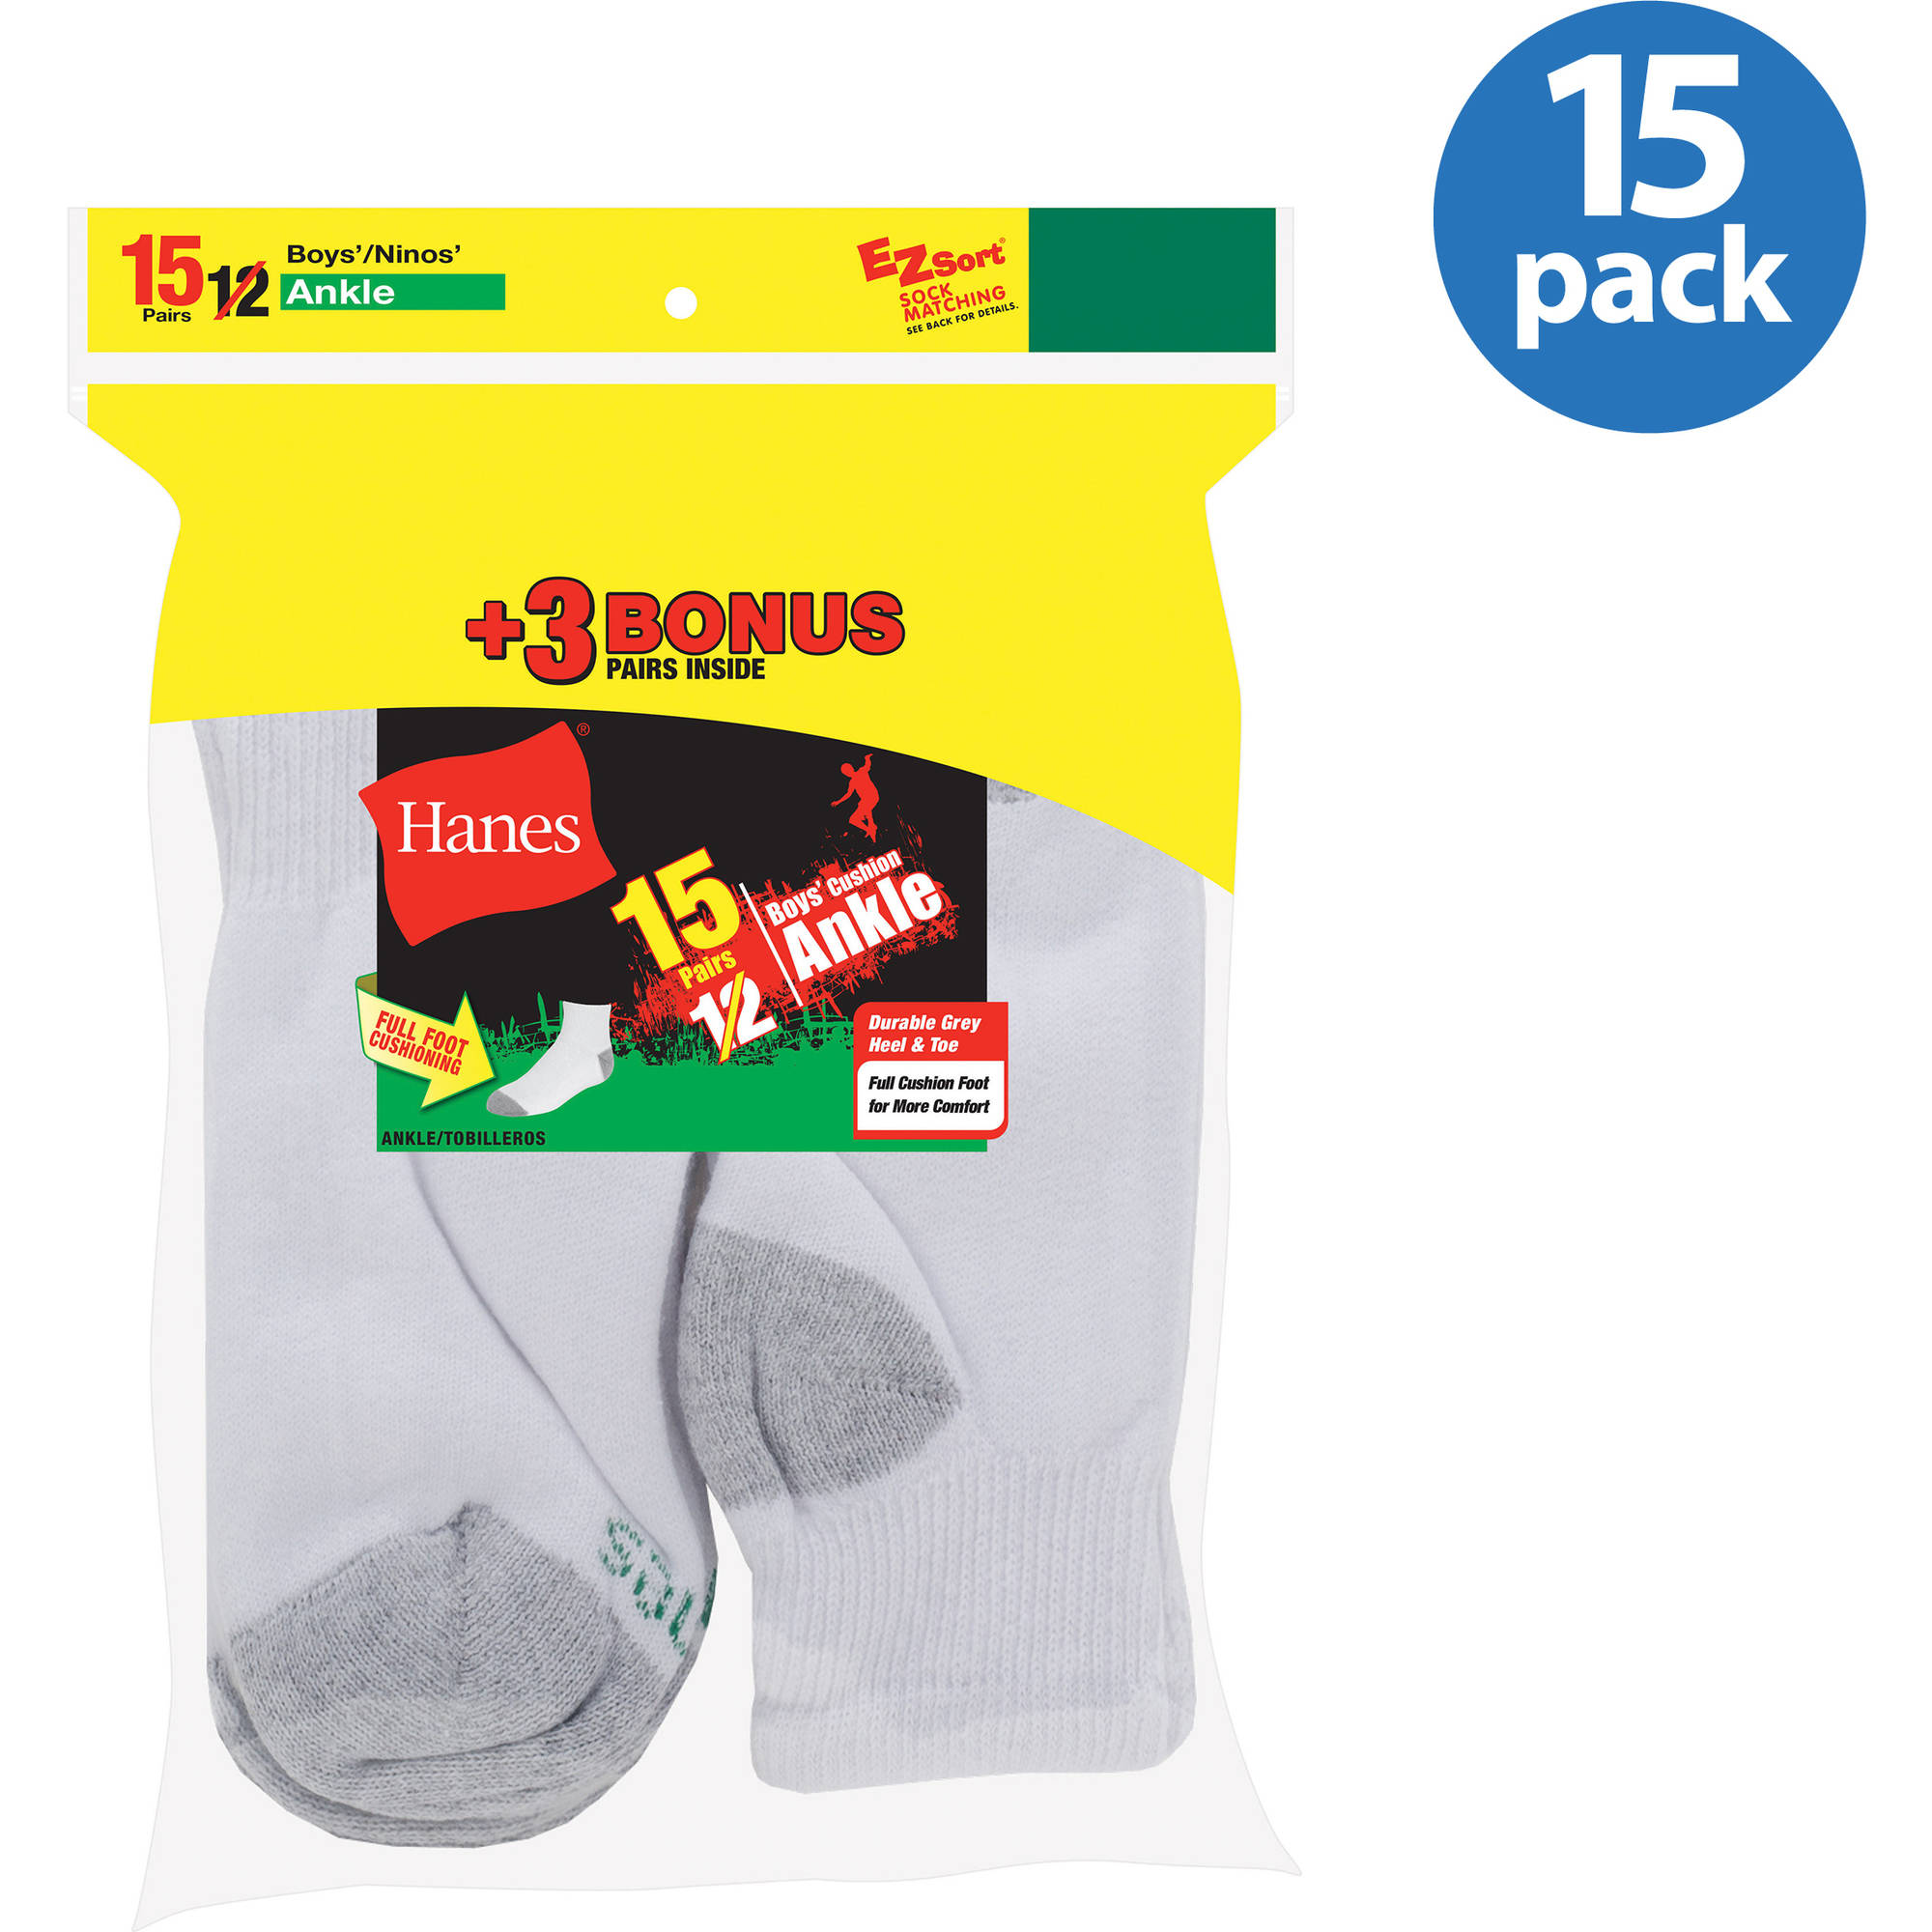 Hanes Boys' Cushion Ankle Socks, 12 + 3 Bonus Pack